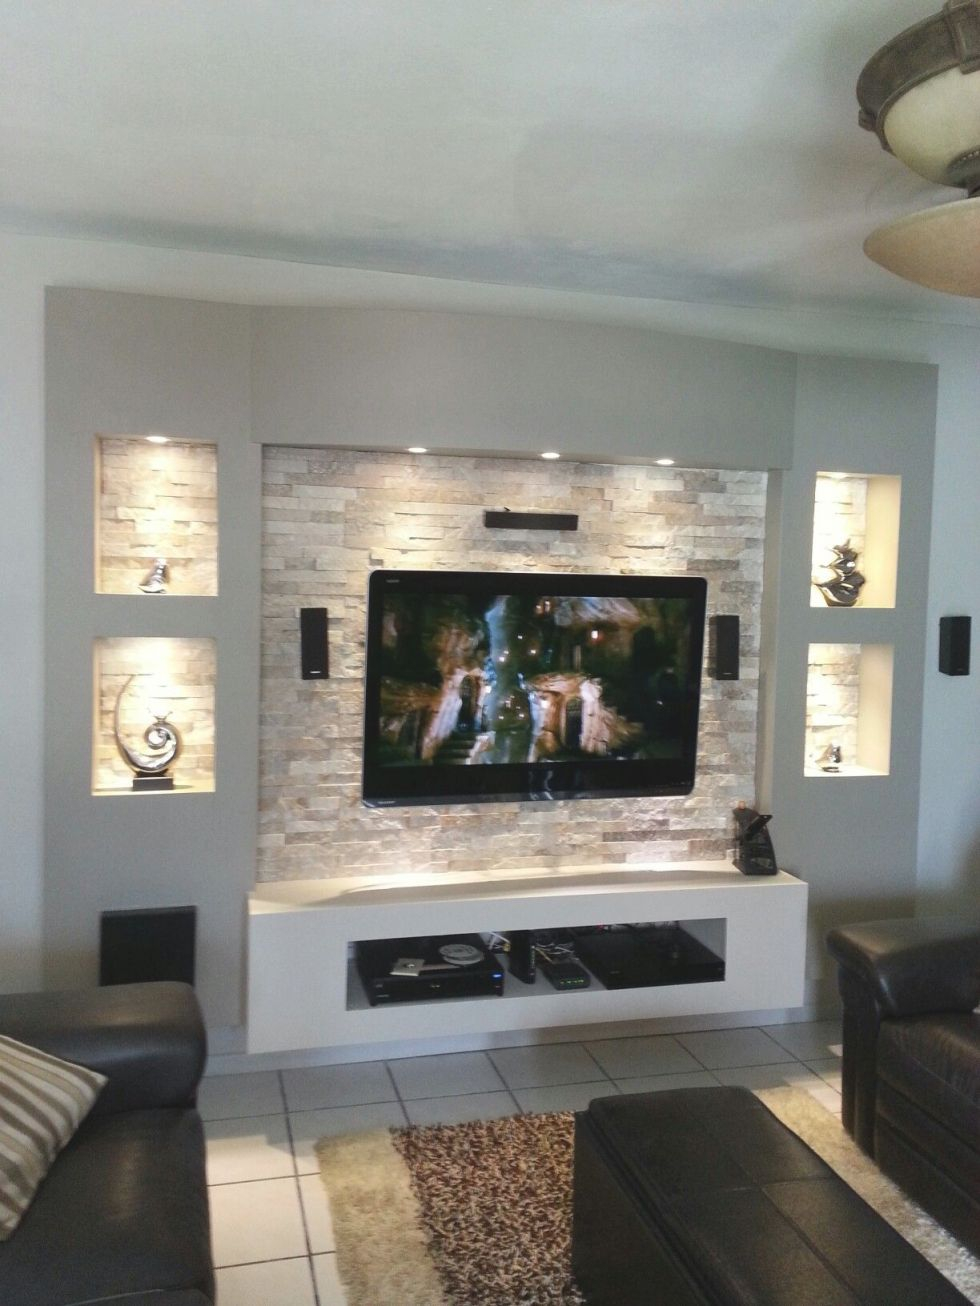 Innovación Tv Unit | My Own Projects In 2019 | Tv Wall Decor in Modern Tv Stand Ideas For Living Room Ideas 2019